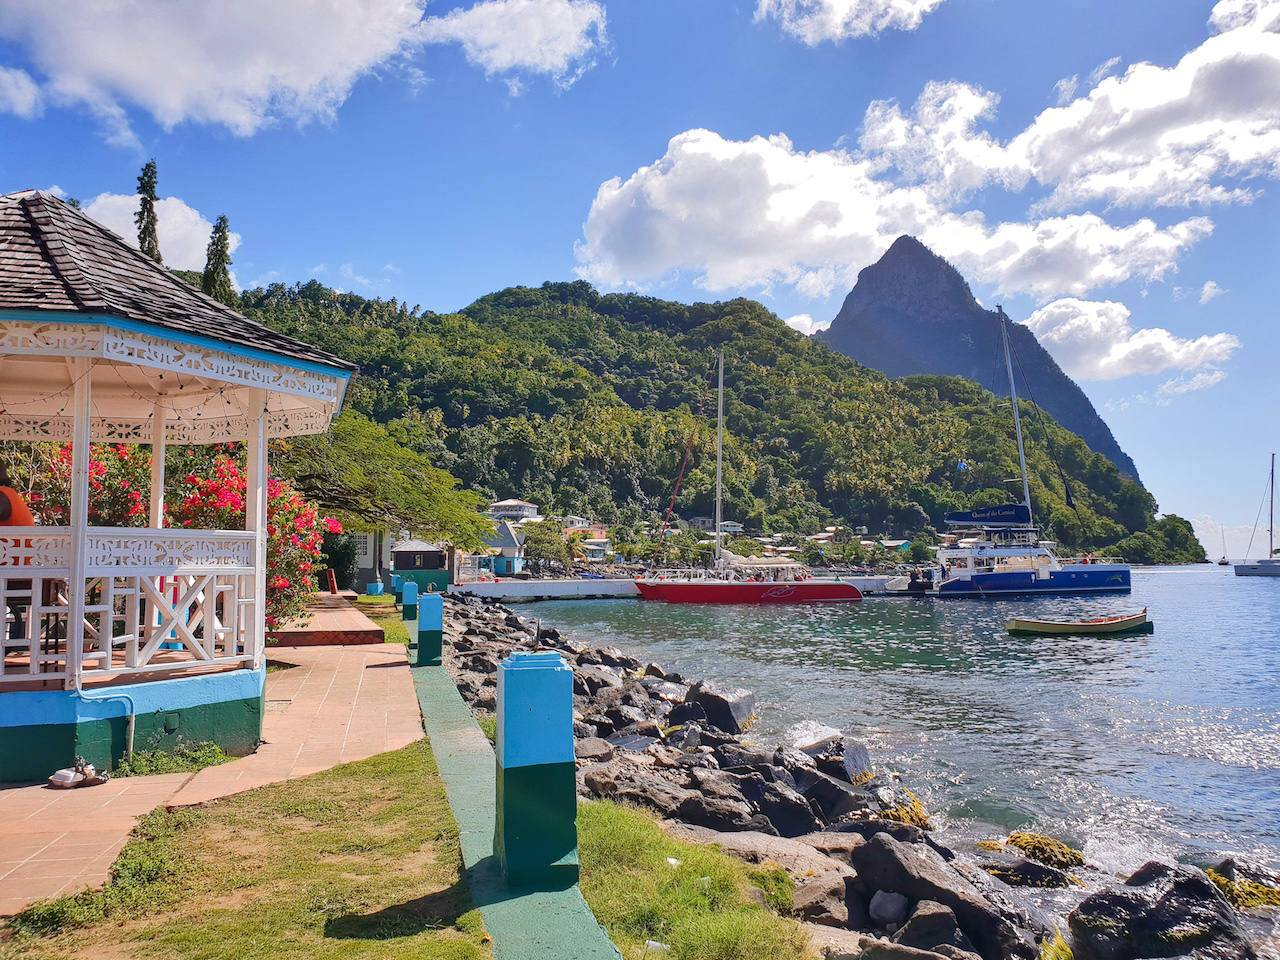 What to do in Soufriere, Saint Lucia